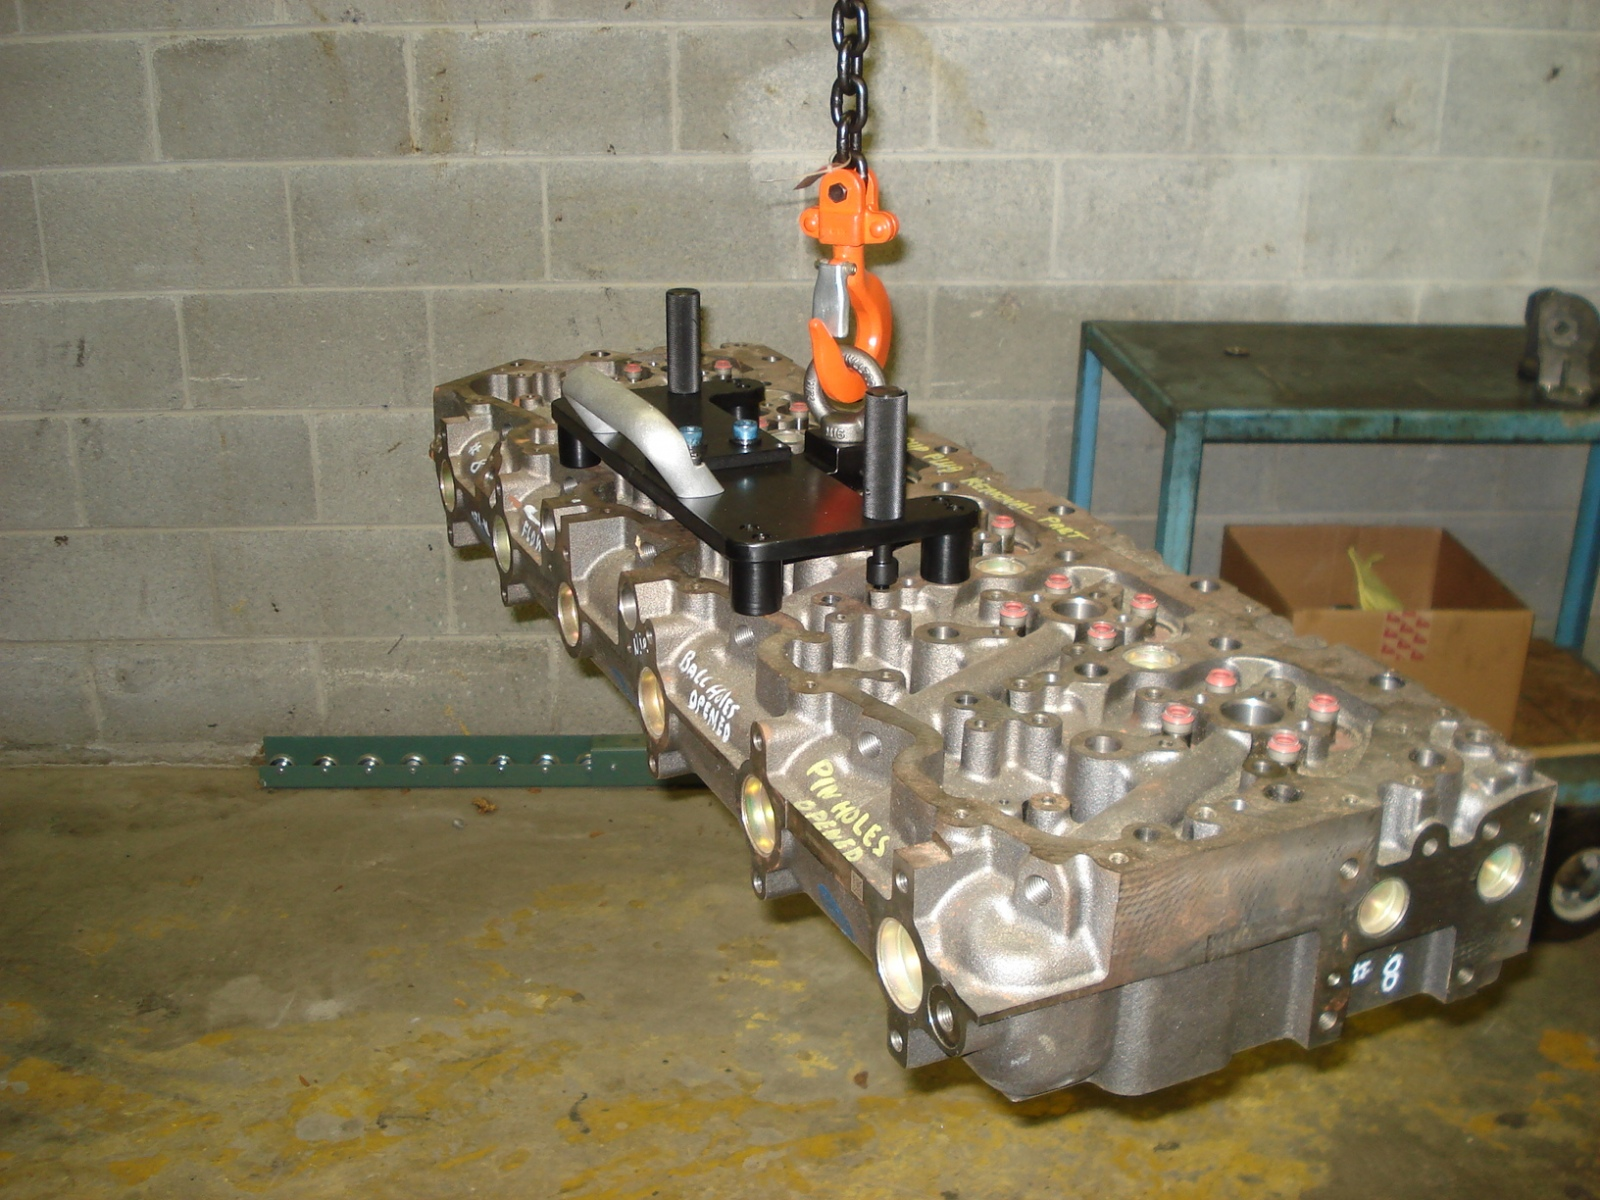 Lift Hook to transfer a 300 pound Cylinder Head from the main assembly line to a repair cart.